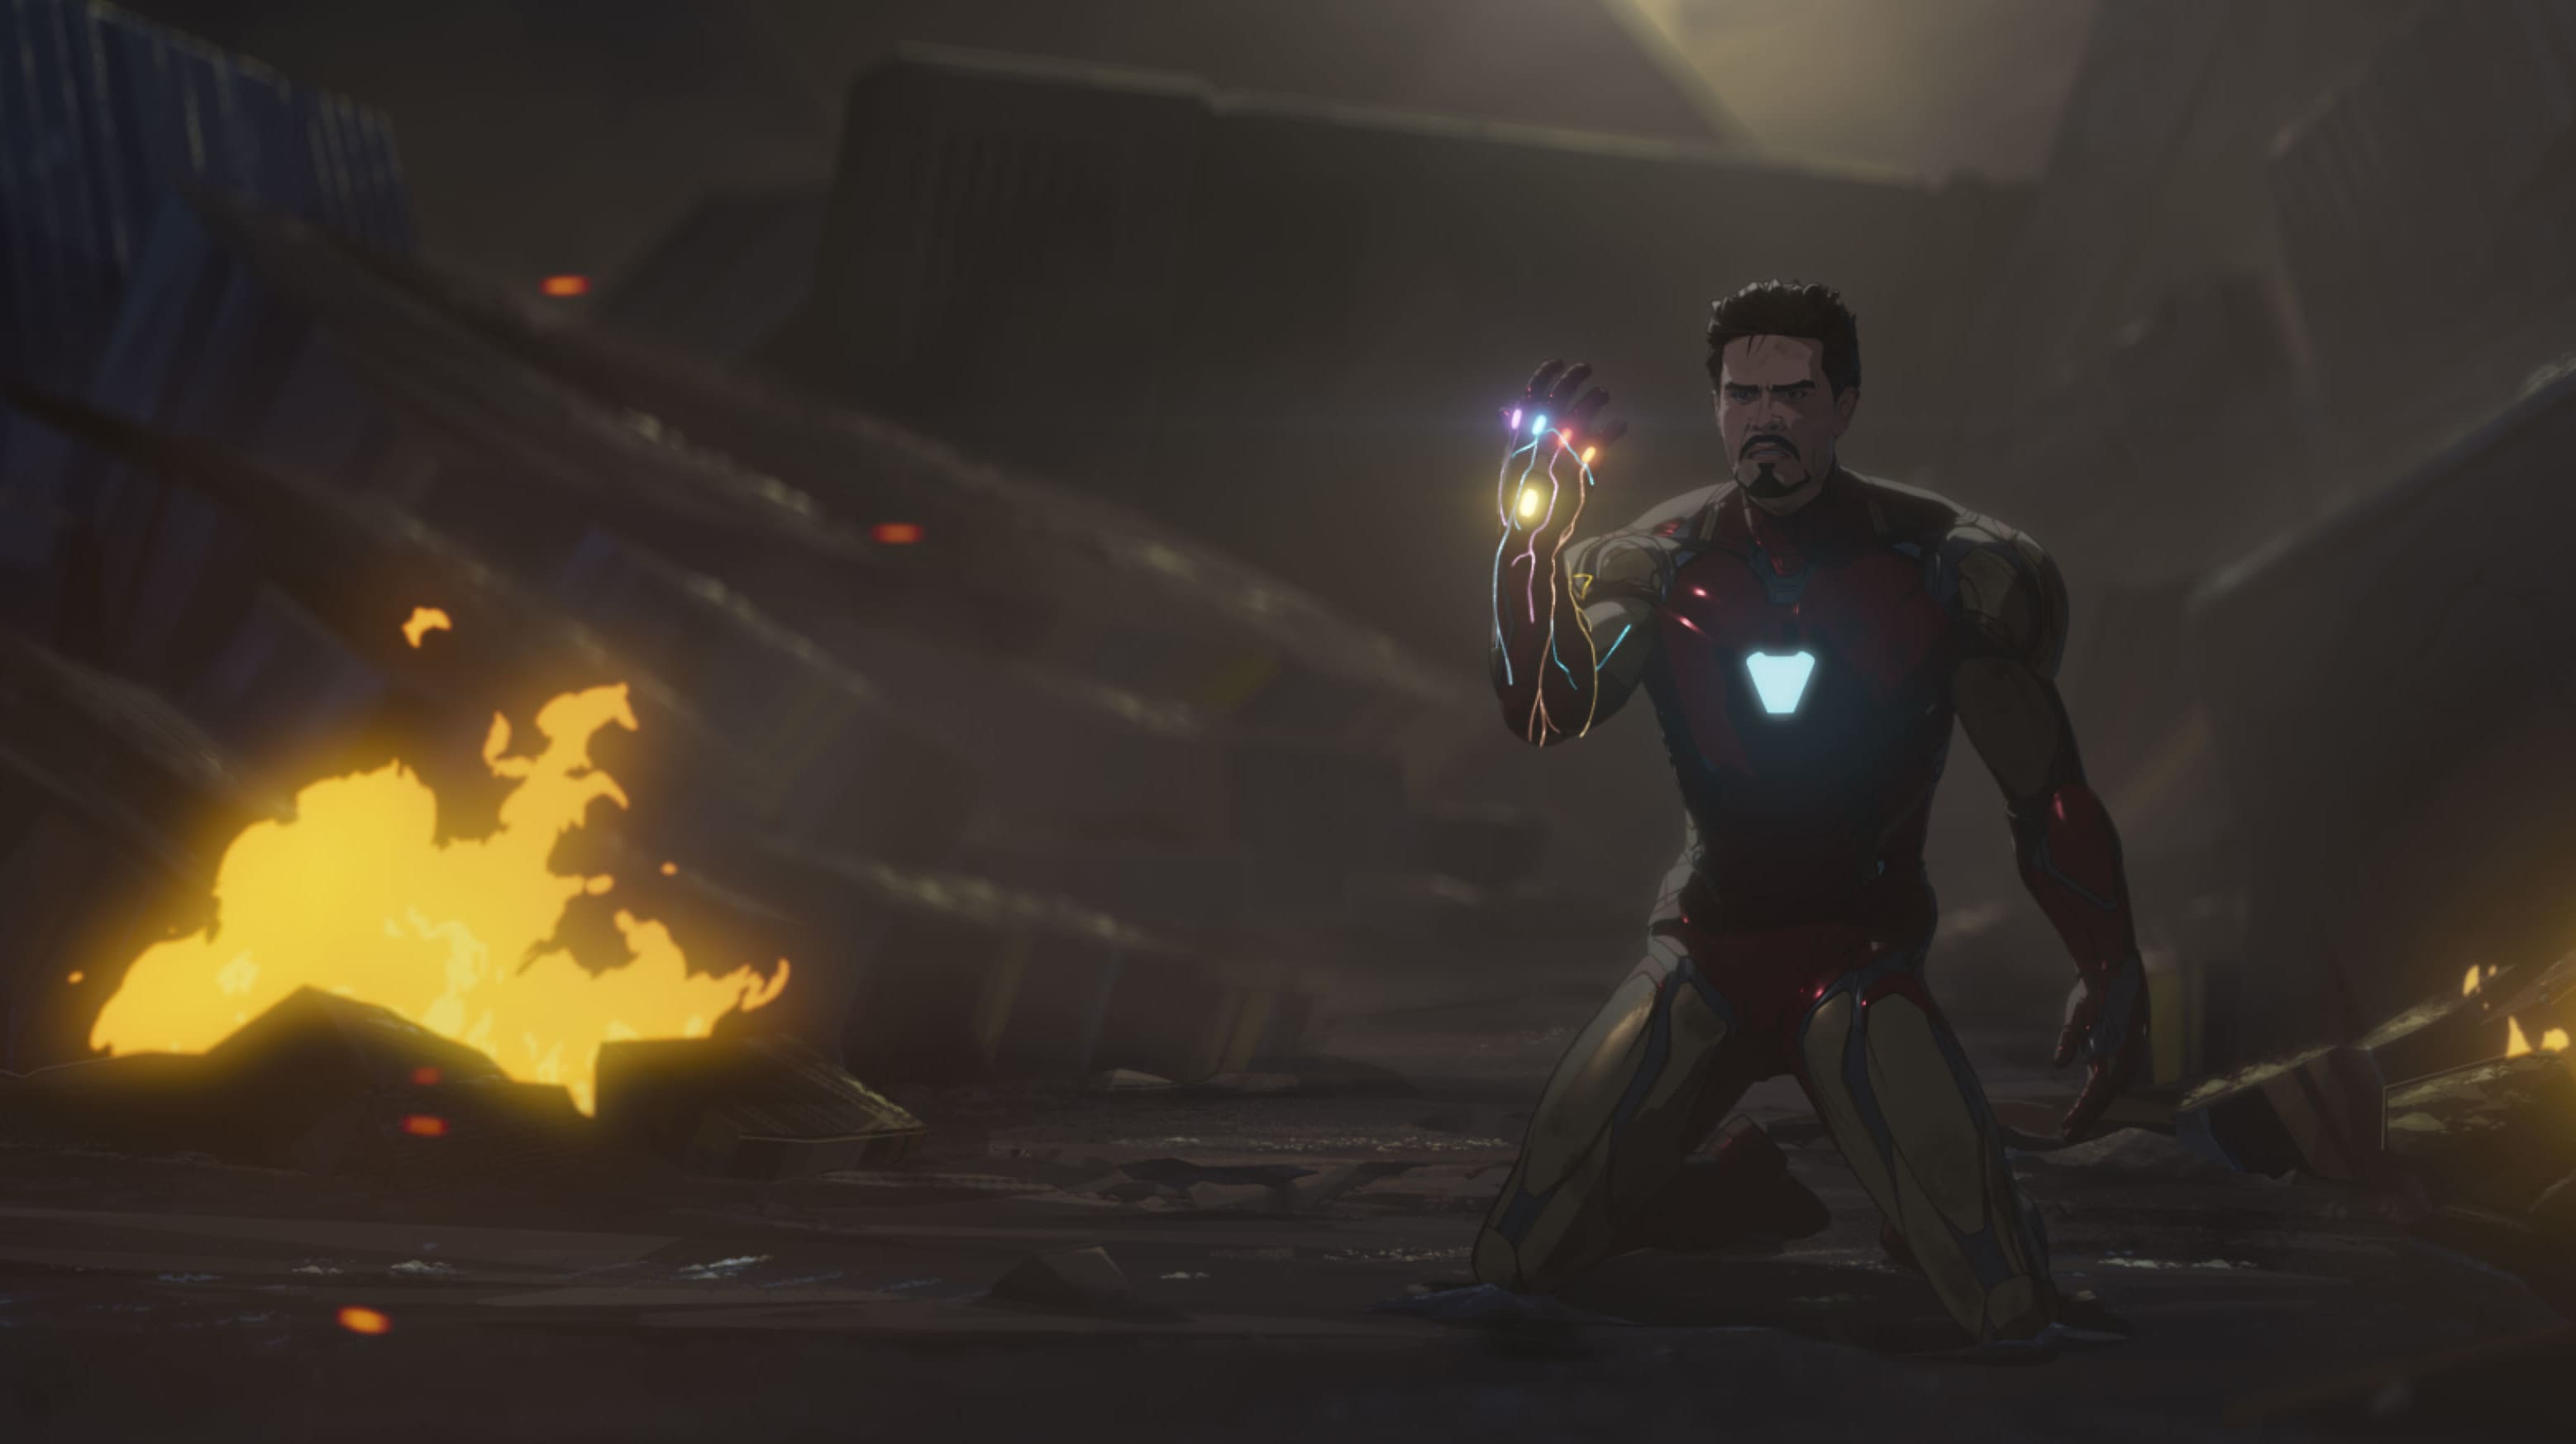 Ironman/Tony Stark in Marvel Studios' WHAT IF…? exclusively on Disney+. ©Marvel Studios 2021. All Rights Reserved.